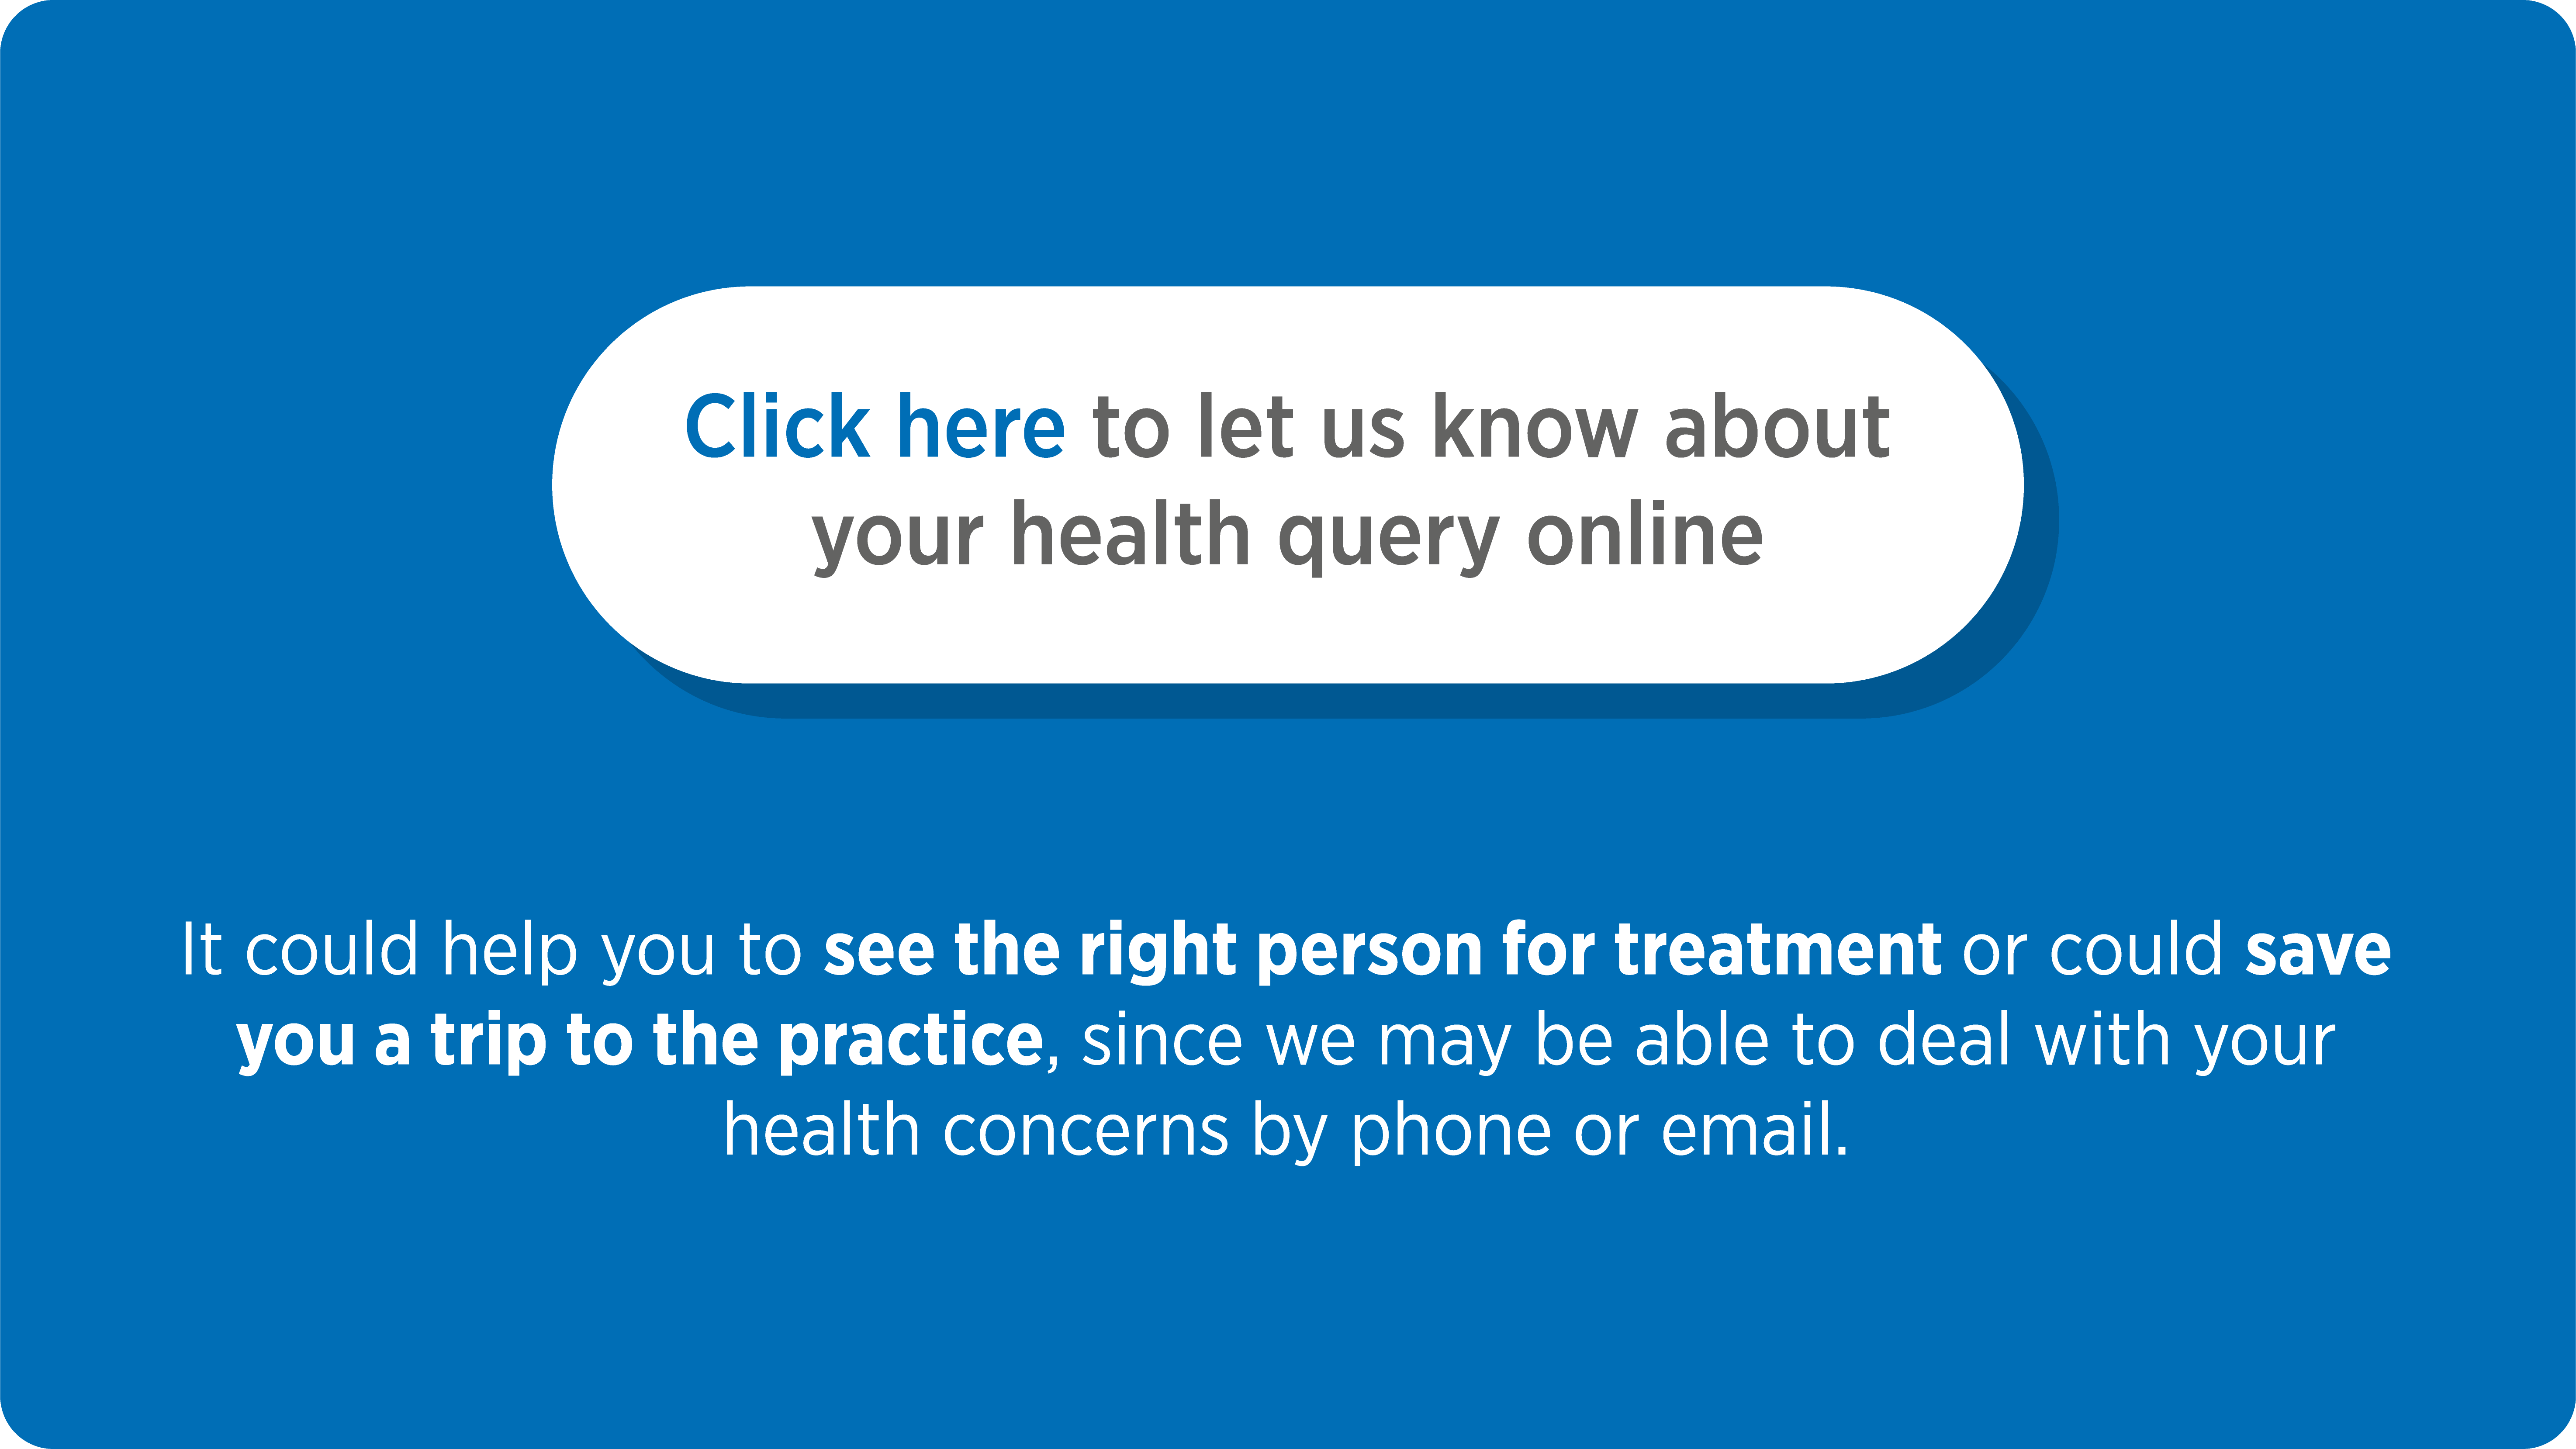 click to let us know your health query online